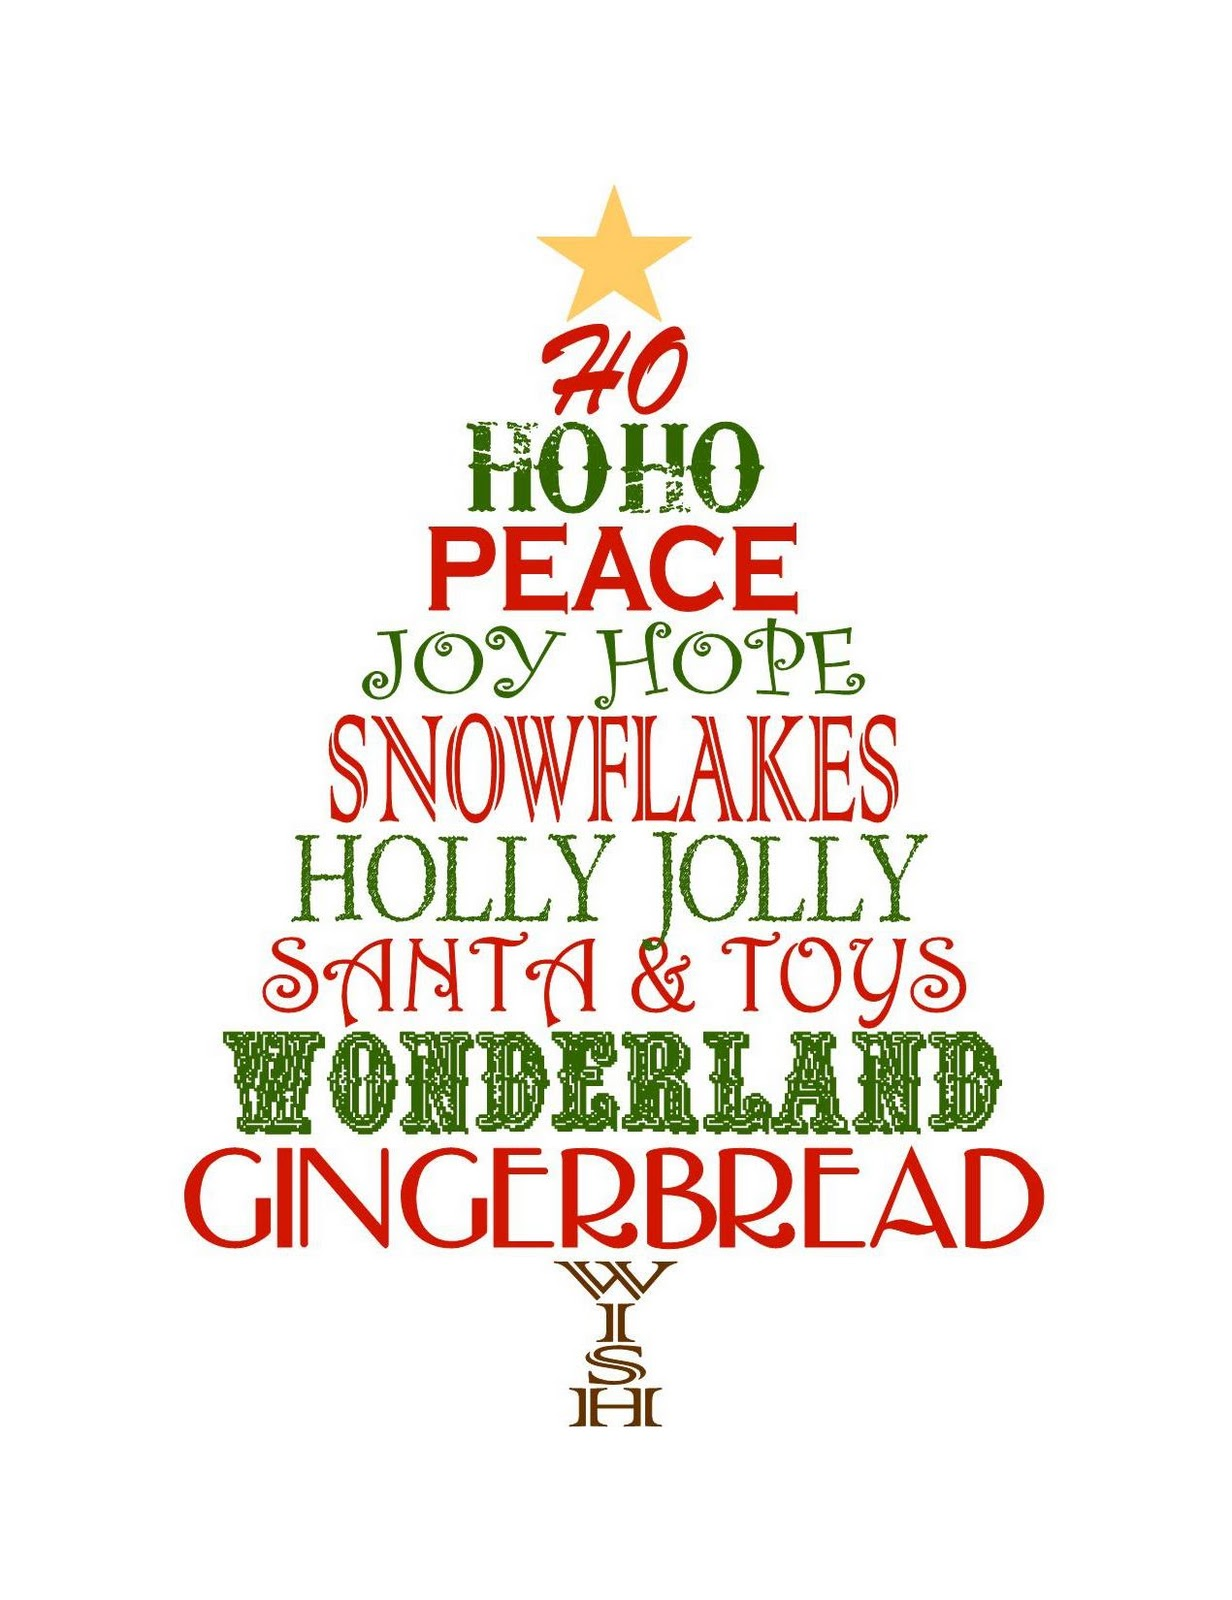 best images about christmas wishes and word art 17 best images about christmas wishes and word art christmas trees word clouds and merry christmas to all